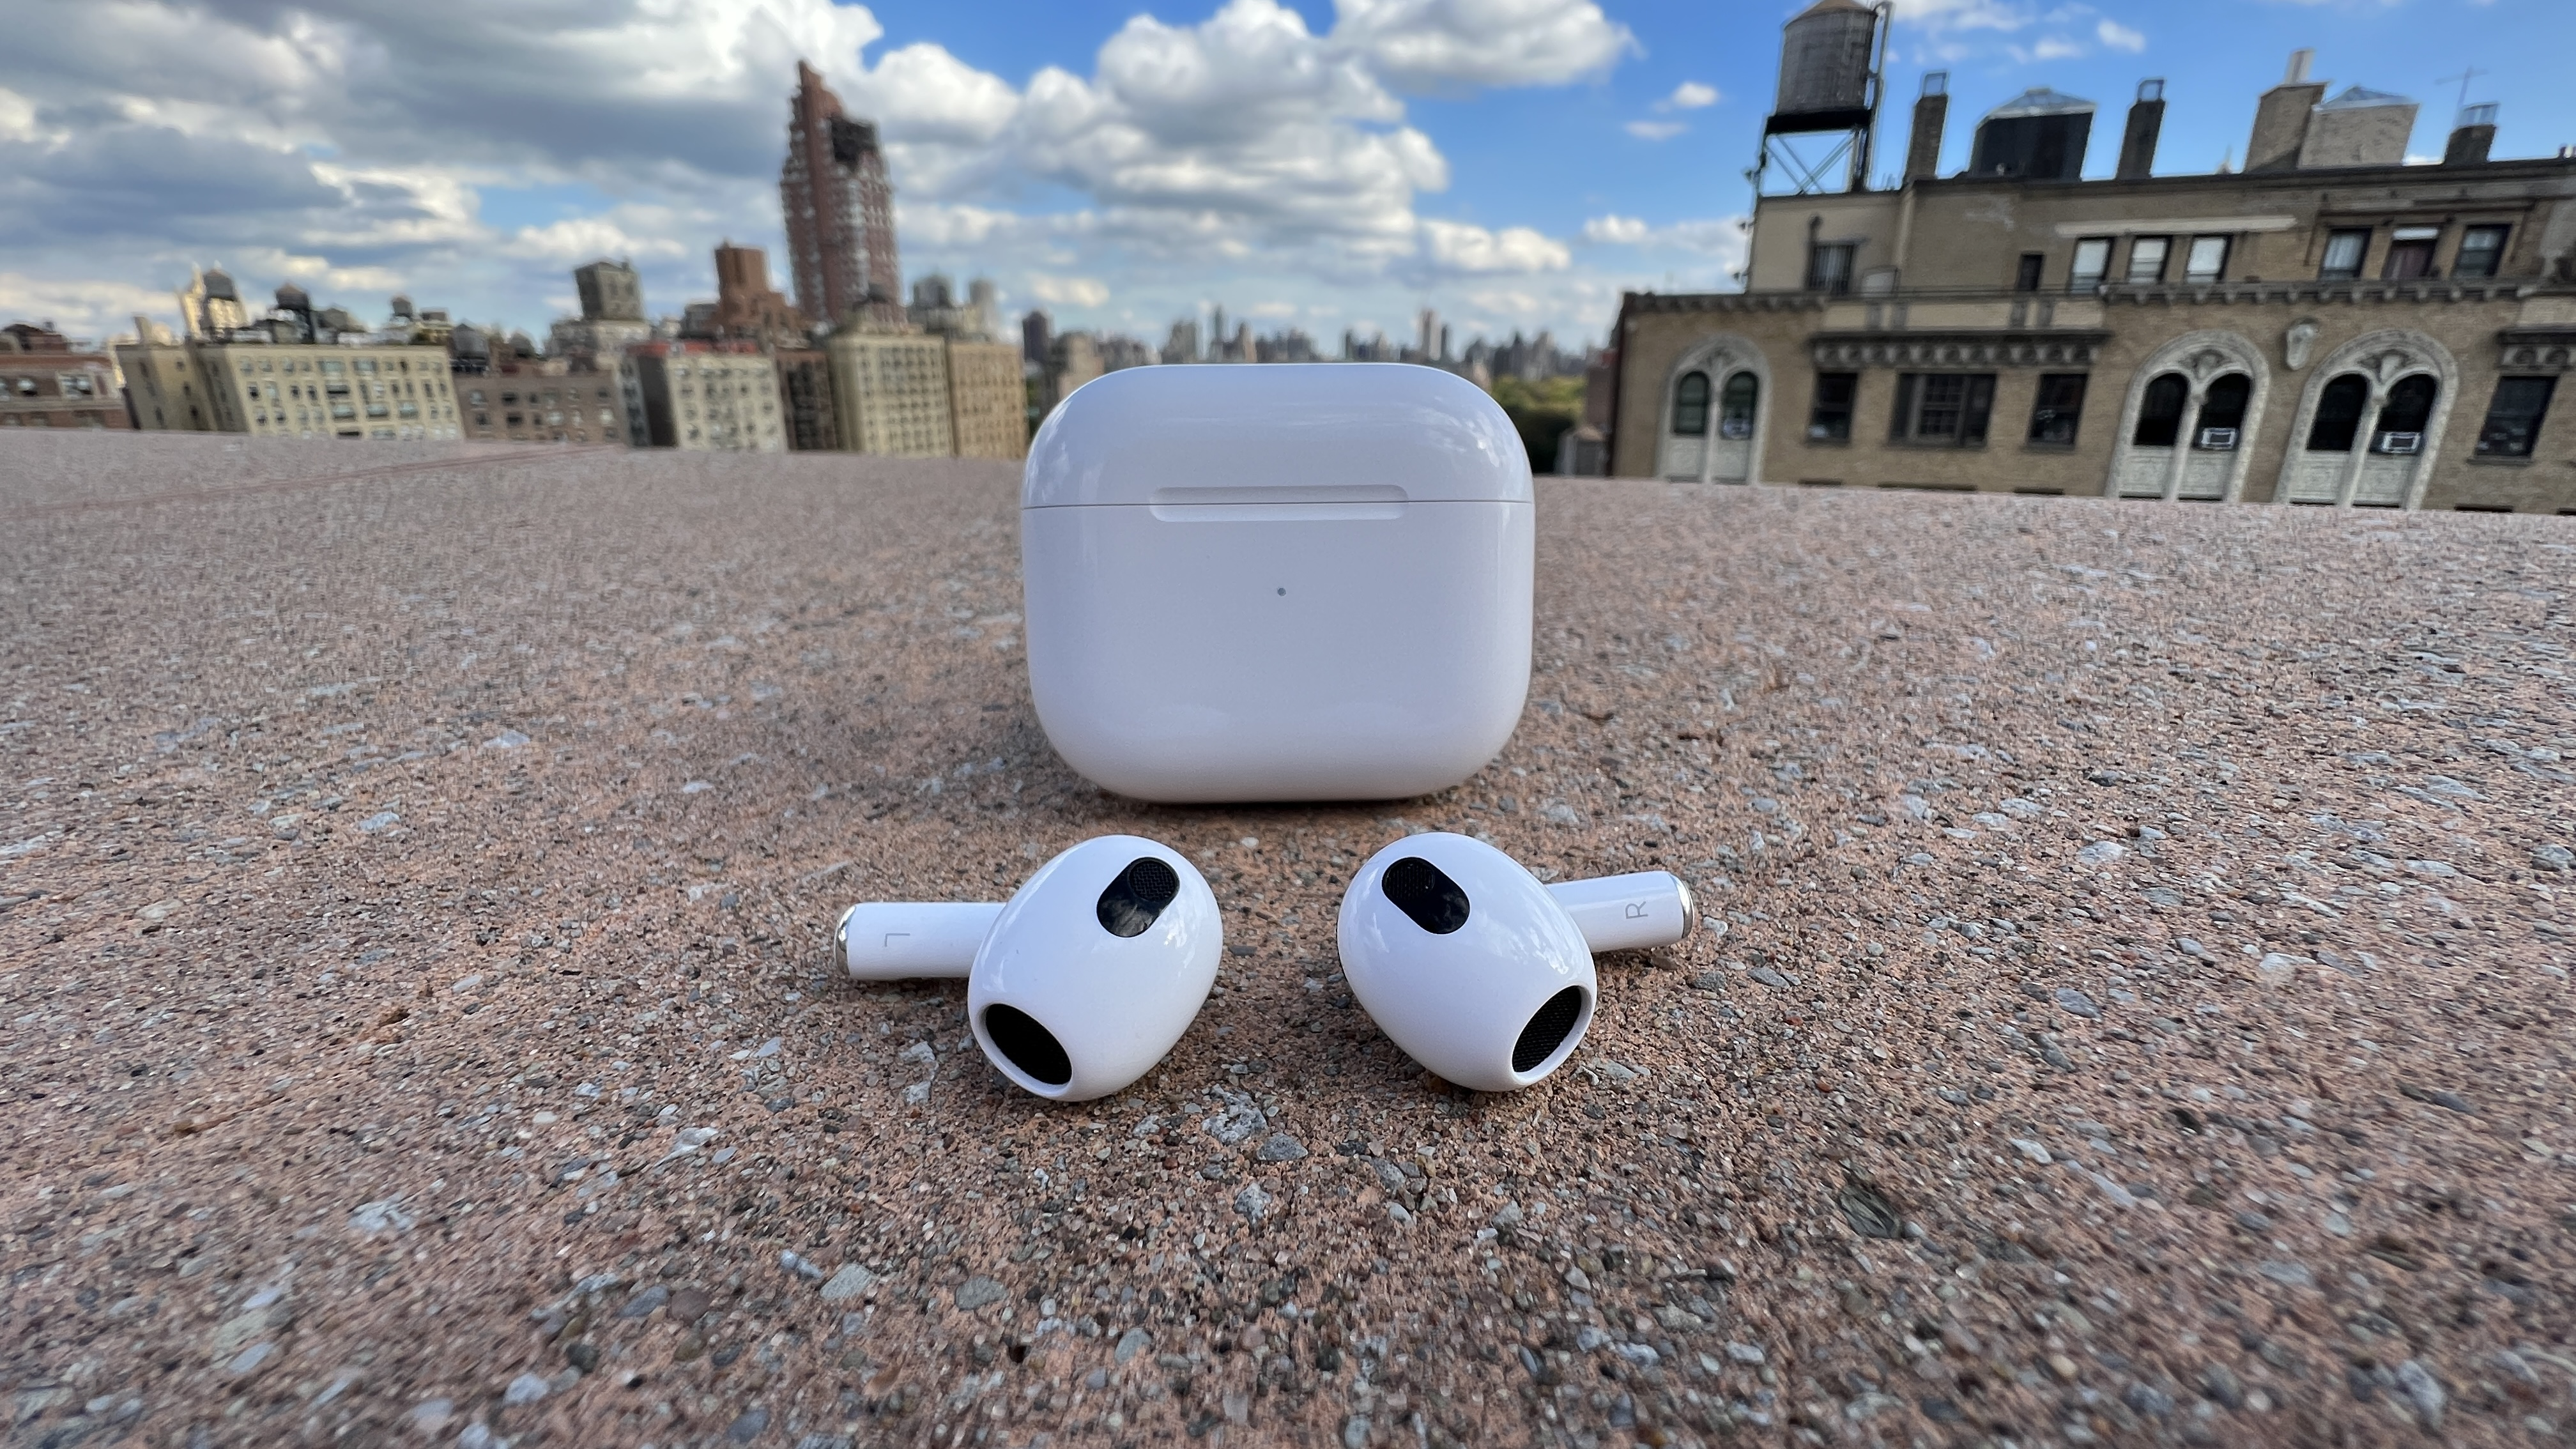 Apple AirPods 3 review: Improved design and significantly better sound